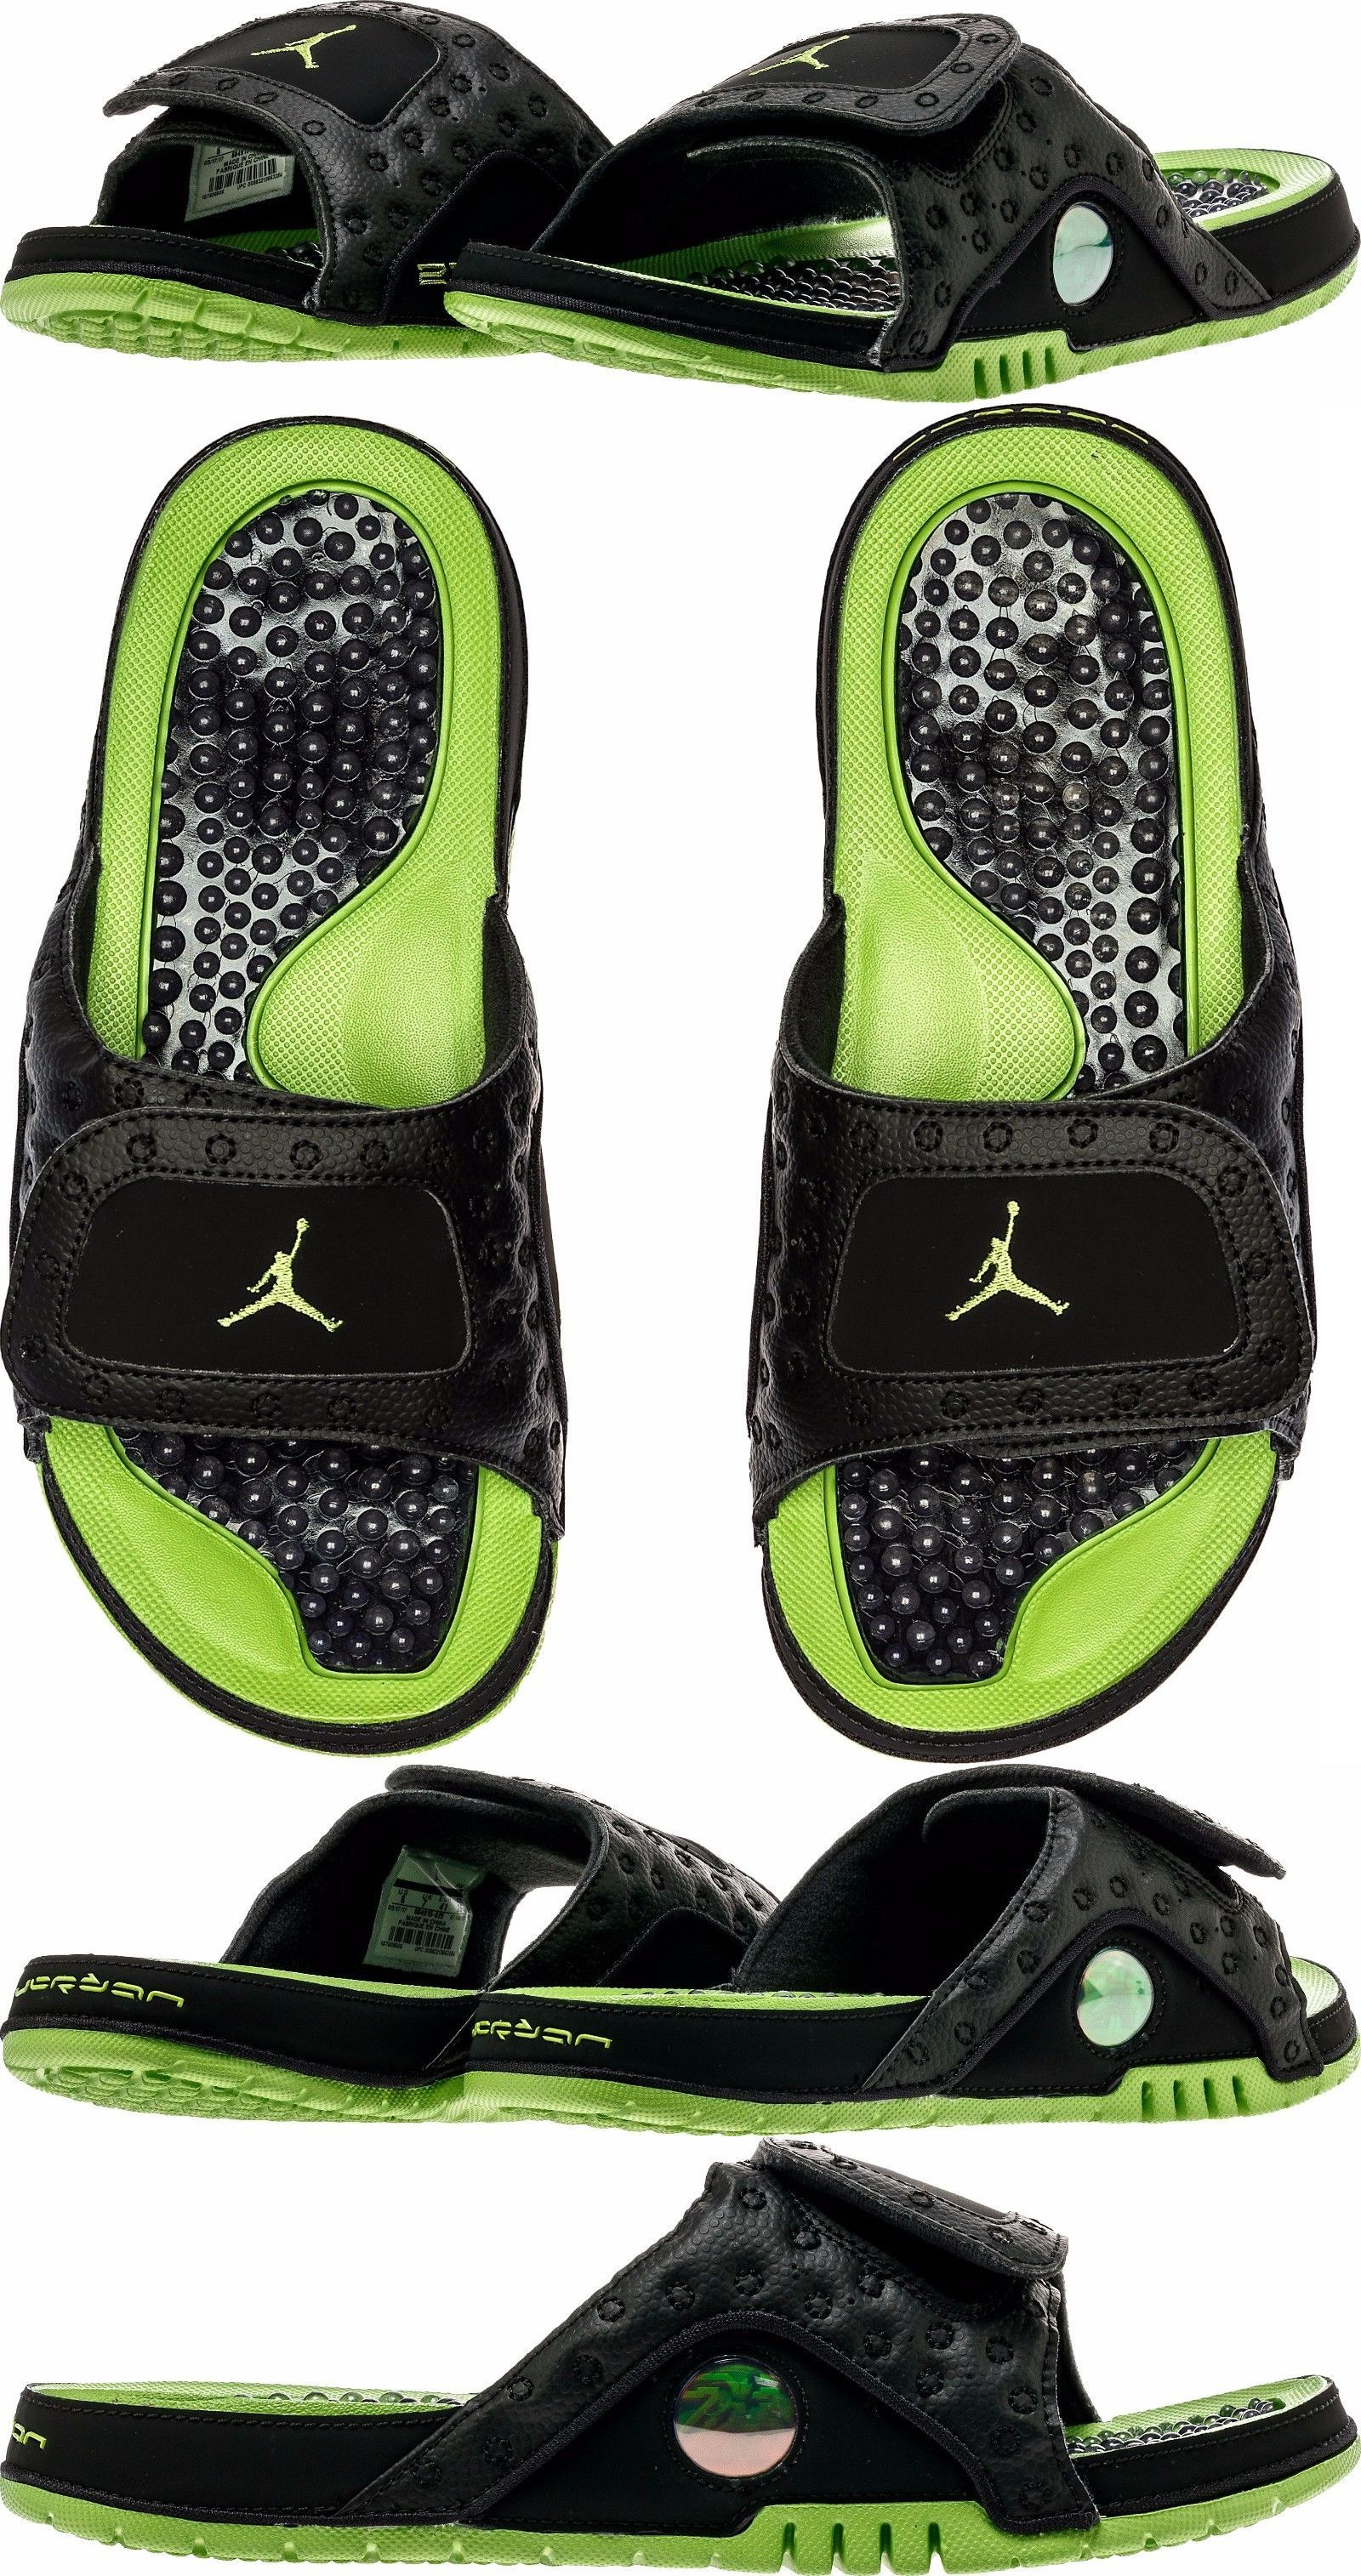 424008c3037 Sandals and Flip Flops 11504: [684915-025] Men S Air Jordan Hydro 13 Xiii  Retro Black Altitude Green 8-13 Nib -> BUY IT NOW ONLY: $57.99 on eBay!